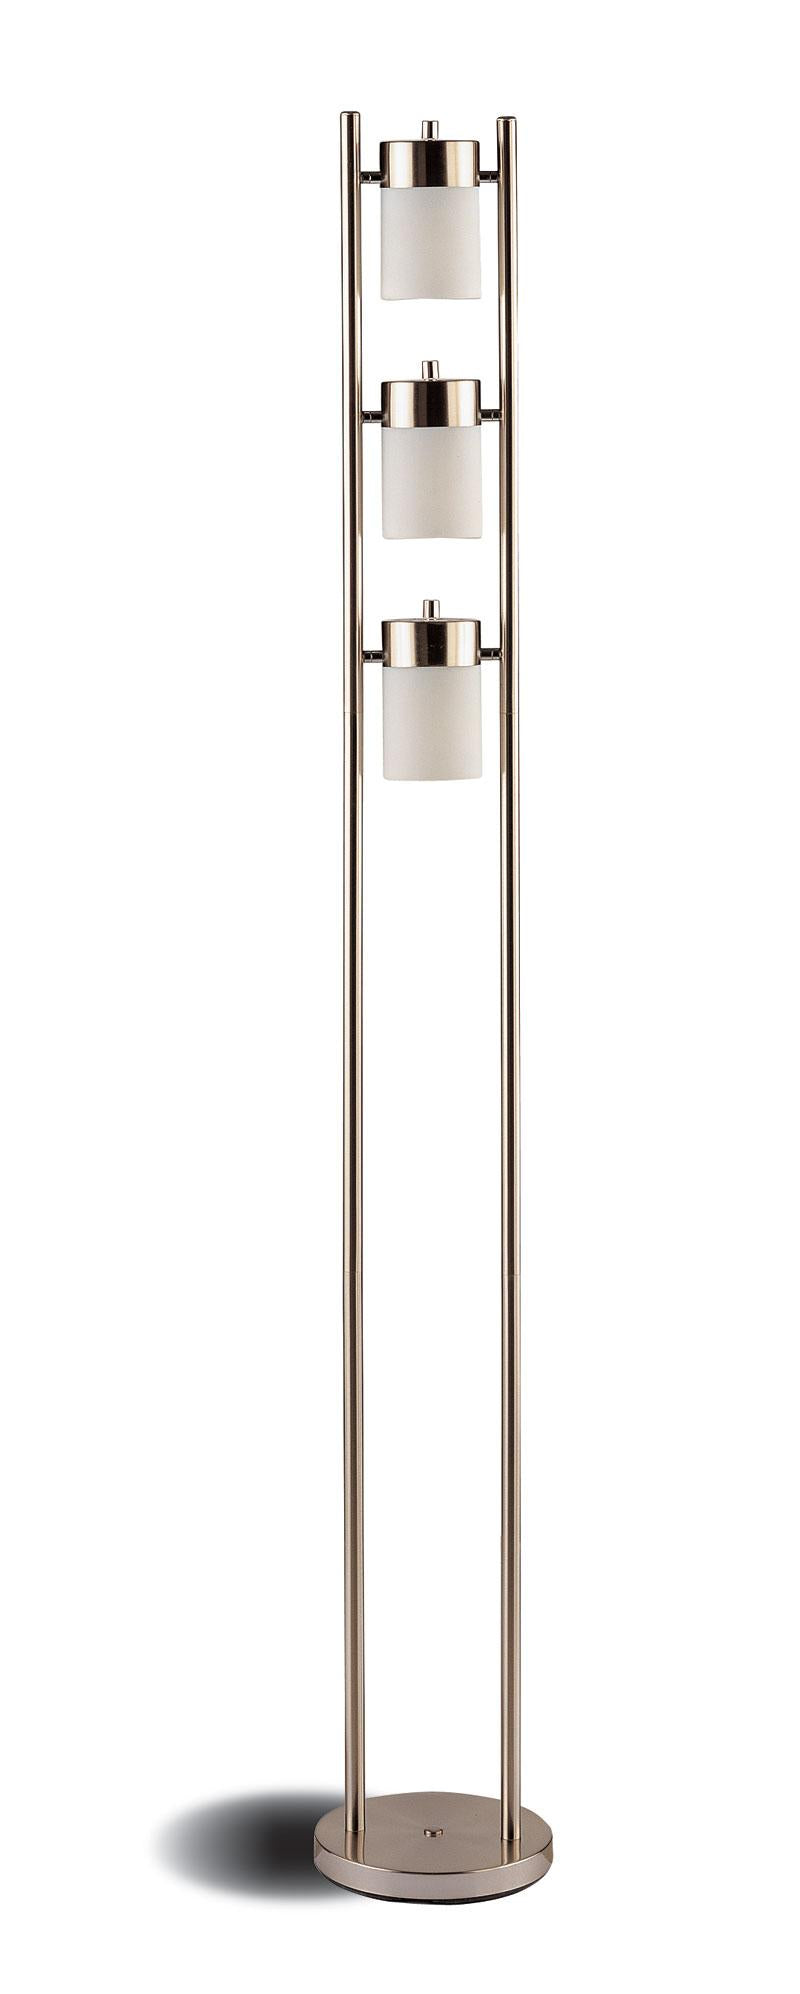 Coaster Contemporary Style Silver Chrome Floor Lamp